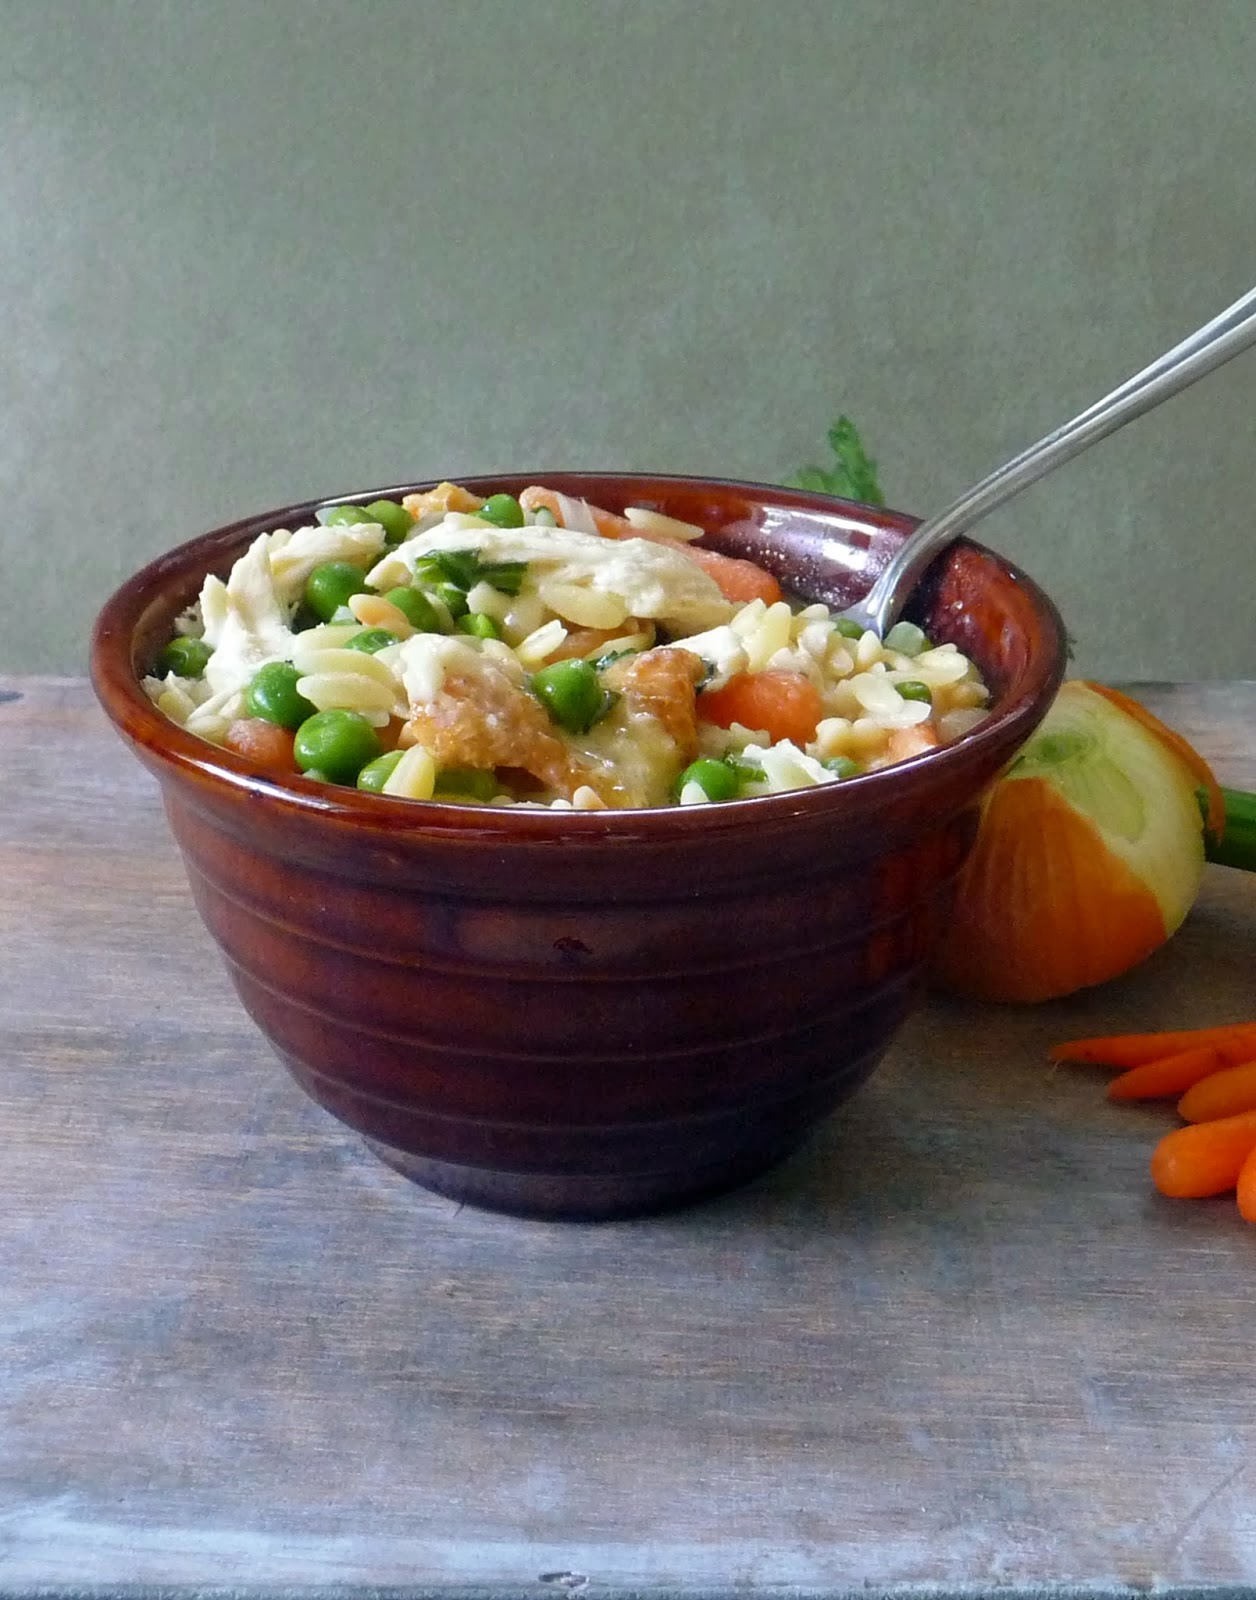 Chicken Pot Pie Pasta from What to Eat this Weekend Roundup on Anyonita Nibbles